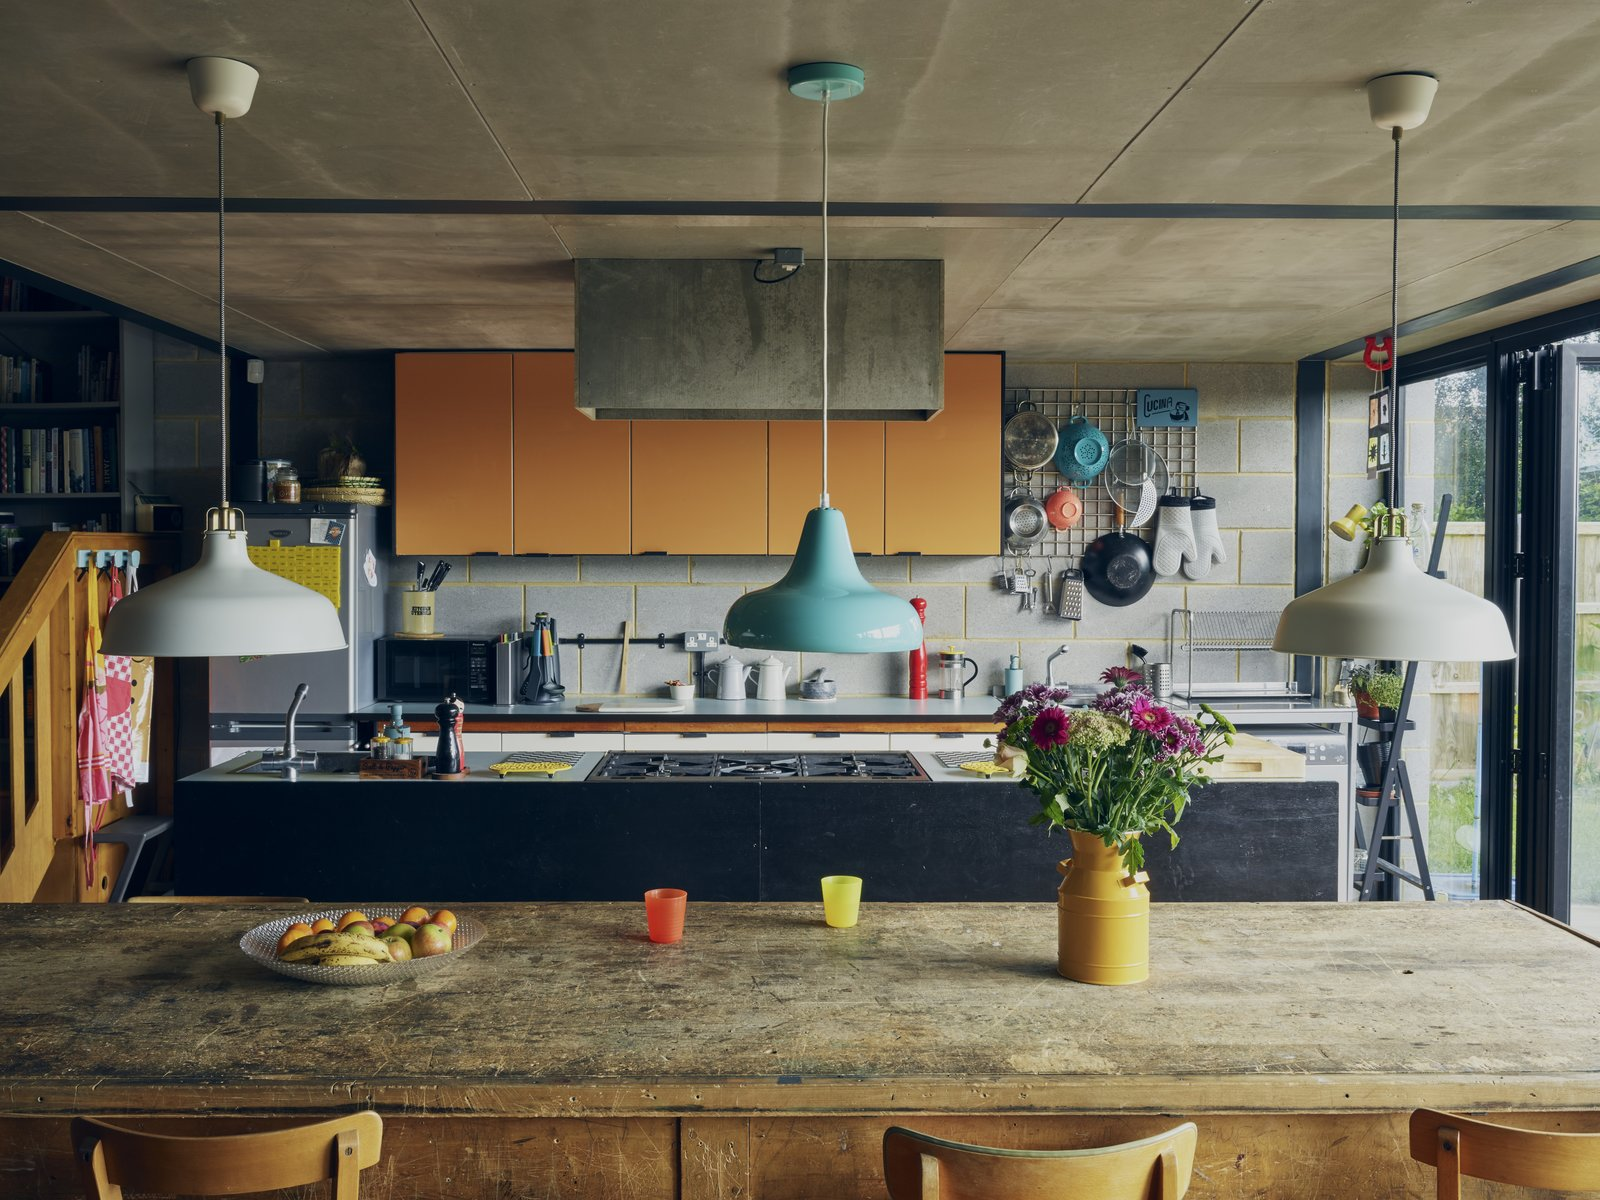 The kitchen is now part of the large open living space. The 1960s Hygena formica cabinets in Polyester Pumpkin were a vintage find. The white pendants are from IKEA and the blue is from Habitat.